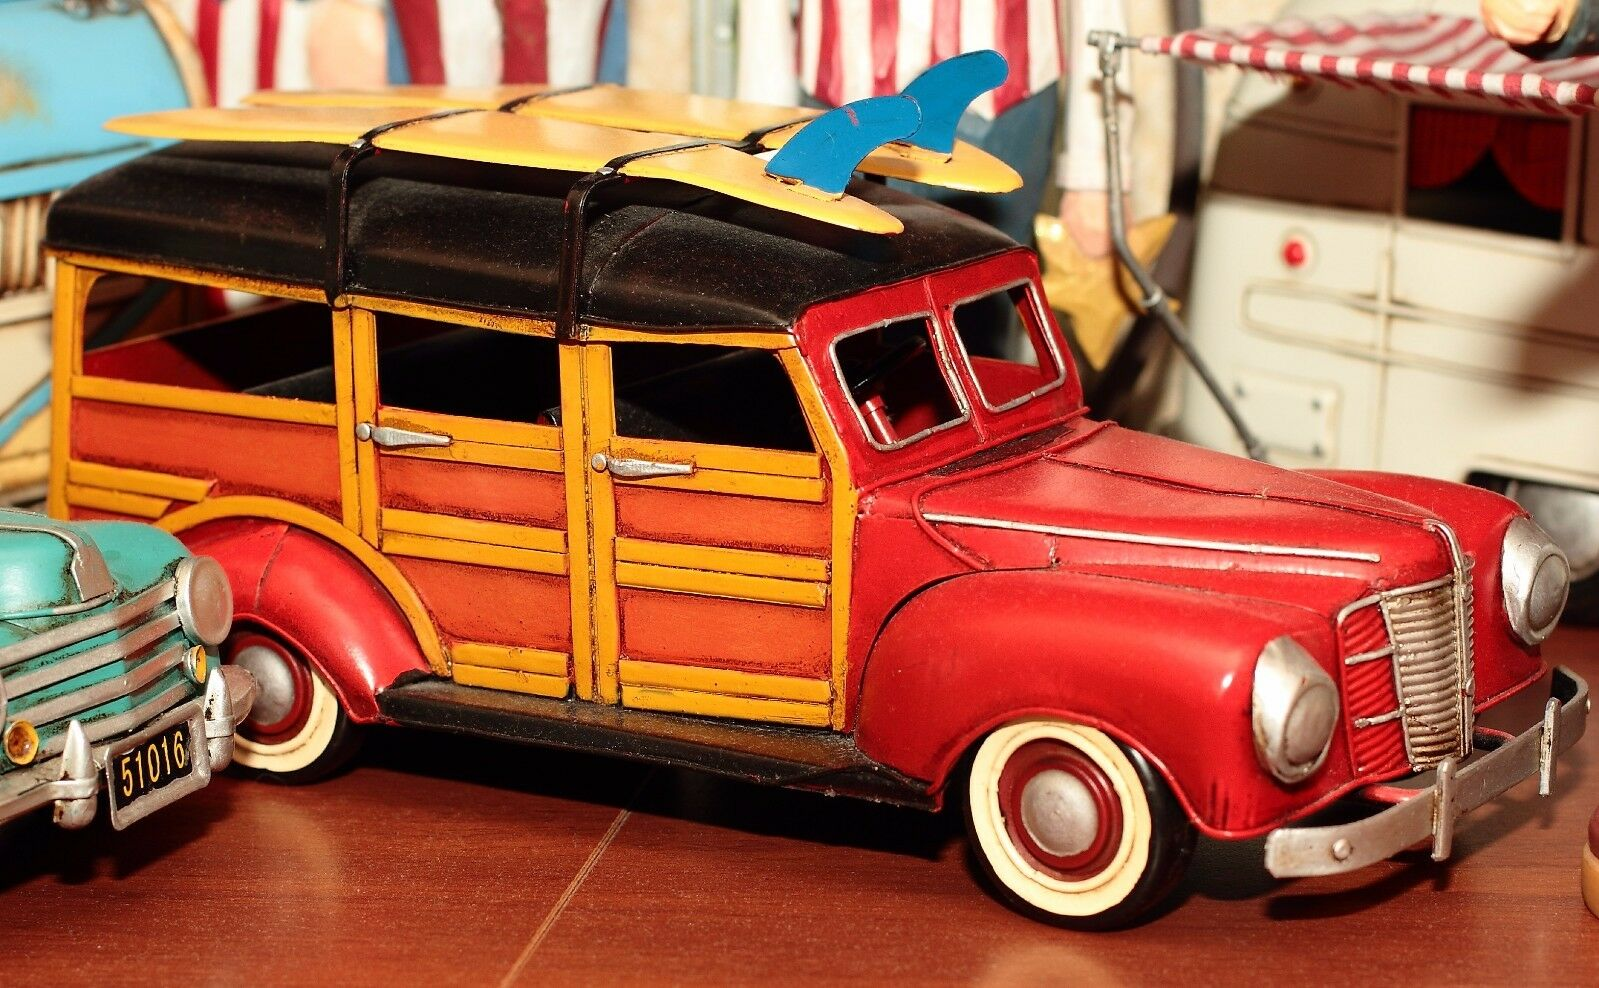 Ford Woody Surf Lata Hojalata Coche blechmodell Auto VOITURE Tole Hecho a Mano Réplica